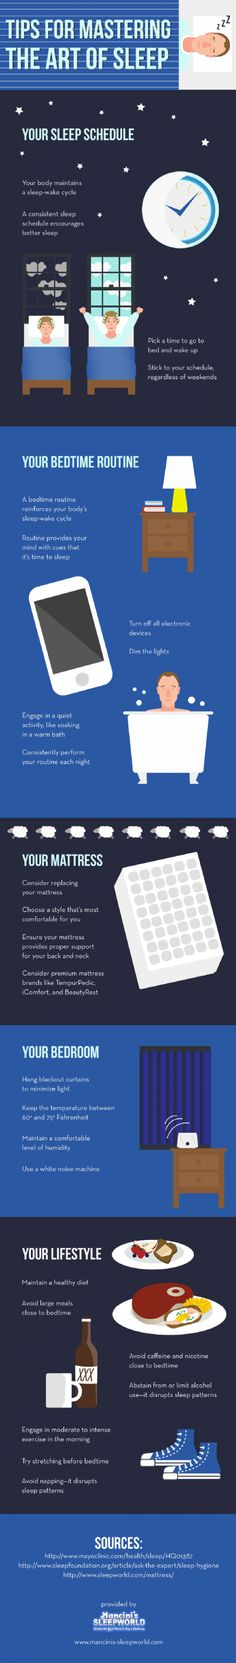 Tips for Mastering the Art of Sleep  Infographic